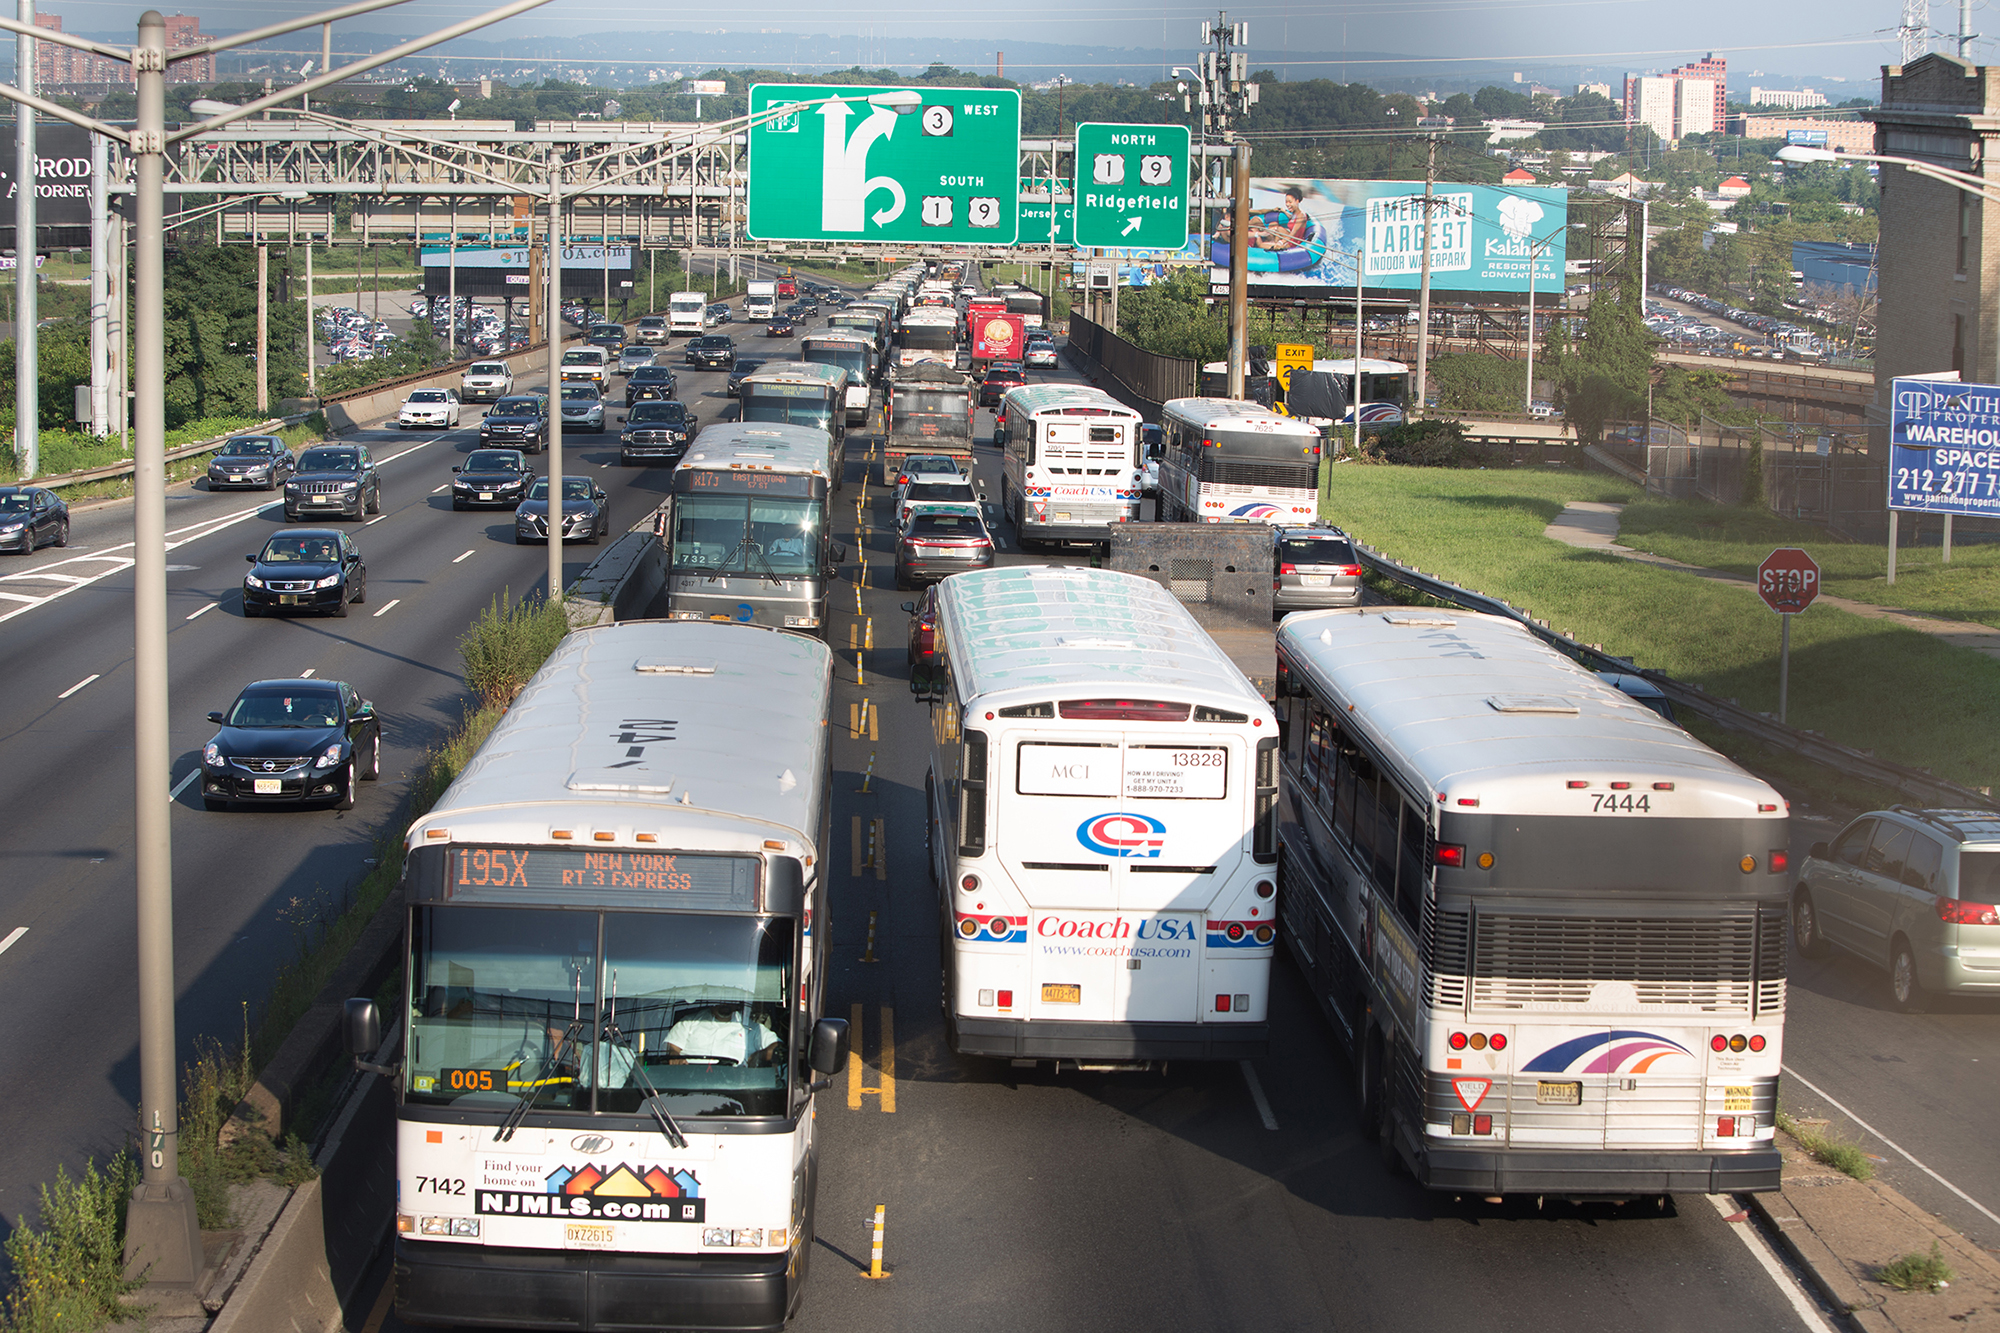 Lincoln Tunnel Exclusive Bus Lane (XBL) image